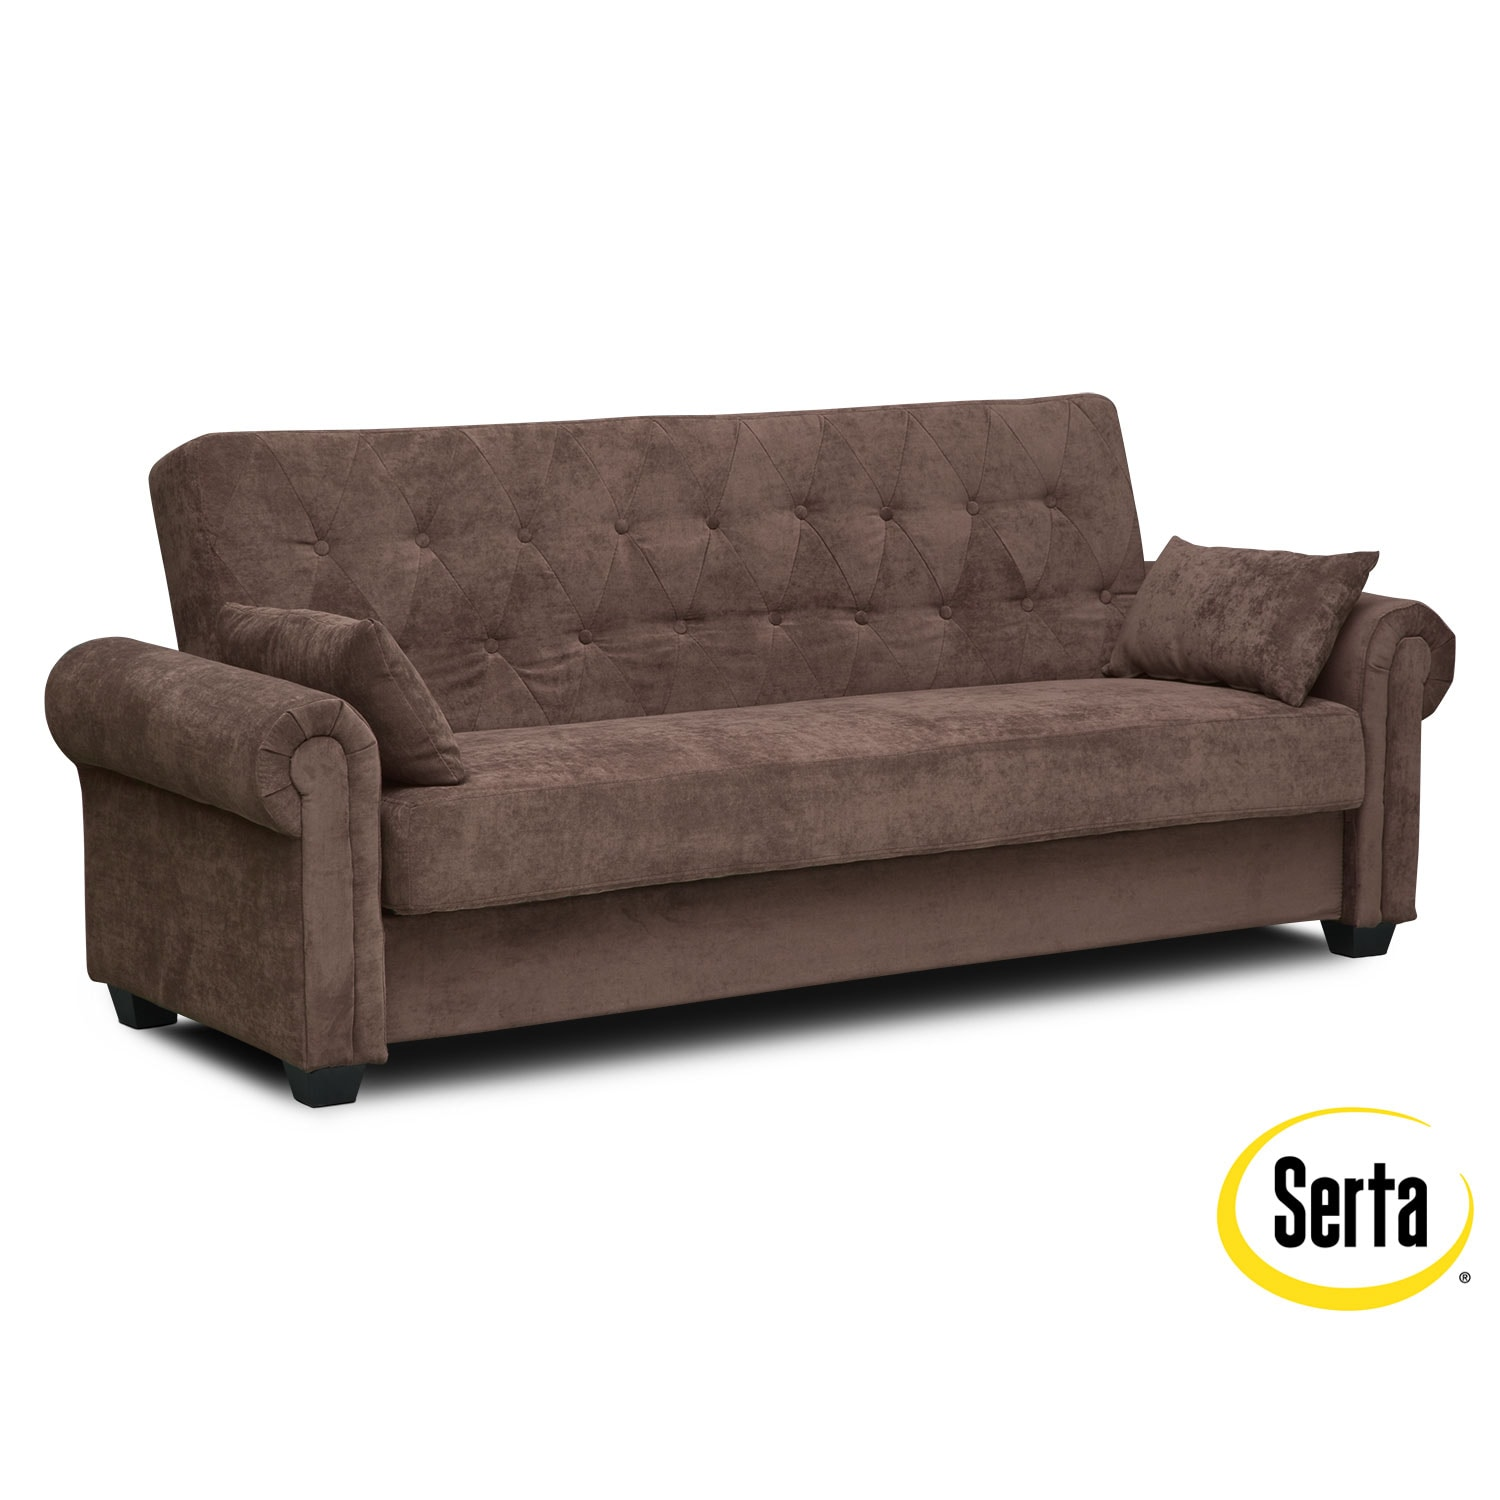 Value City Living Room Furniture Futons Living Room Seating Value City Furniture